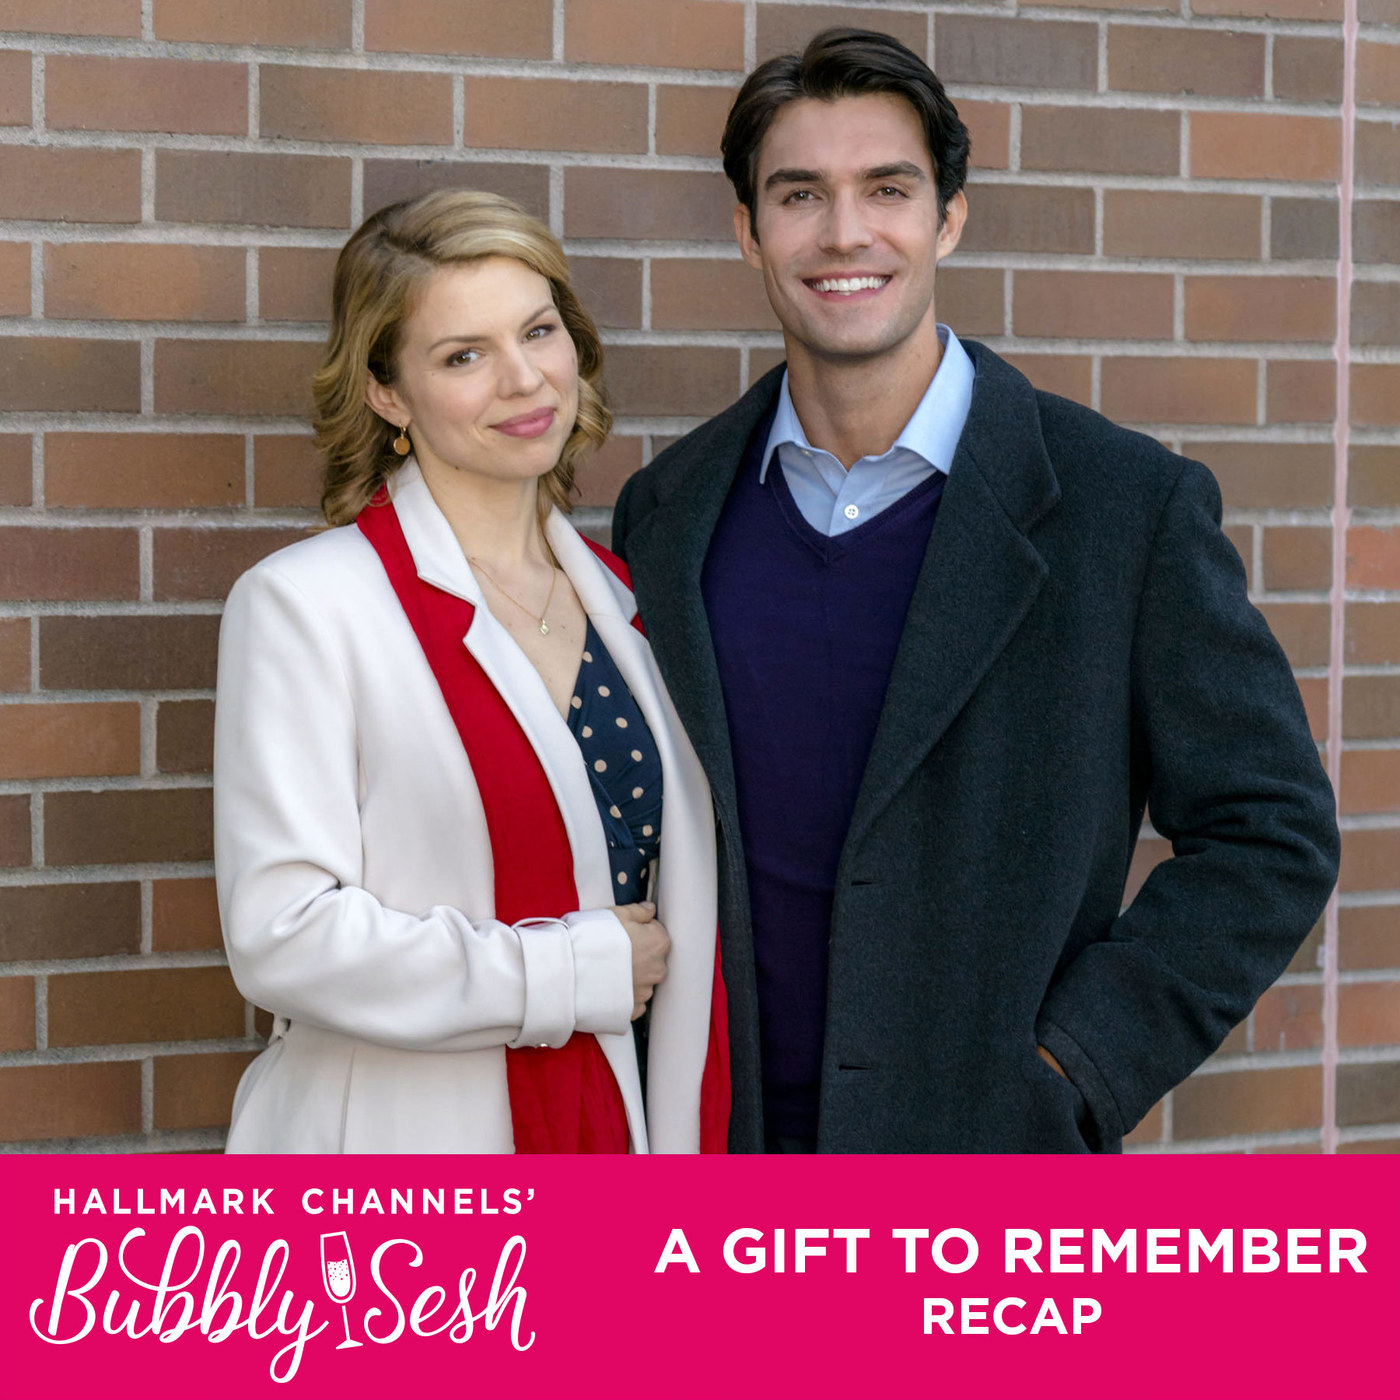 A Gift to Remember Recap